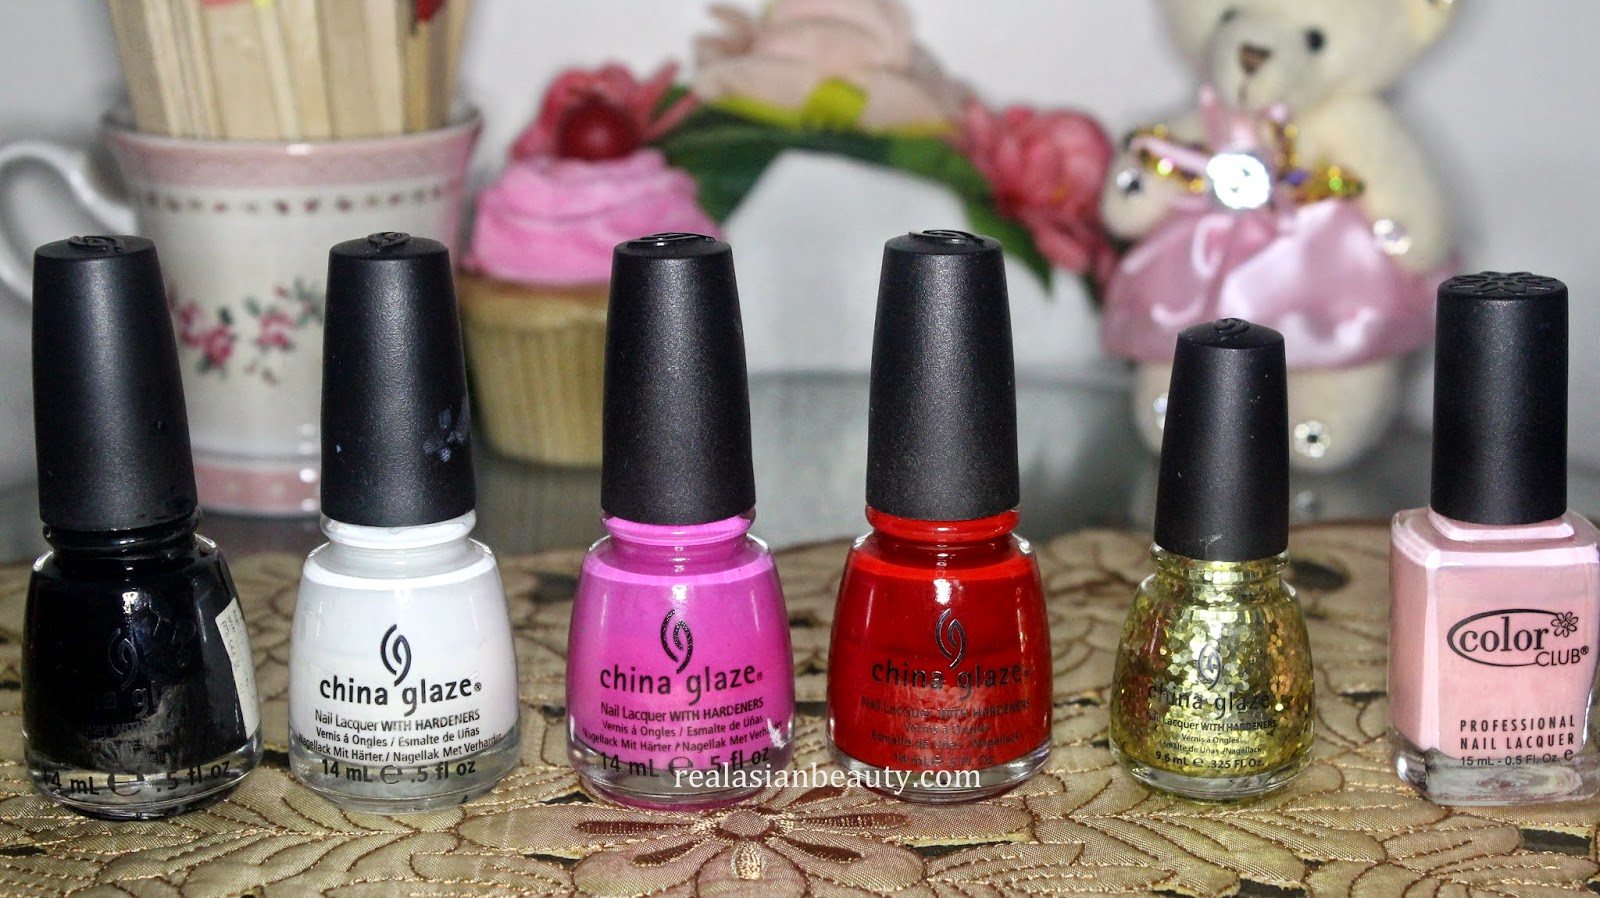 Real Asian Beauty: Updated Nail Polish Collection - 2014